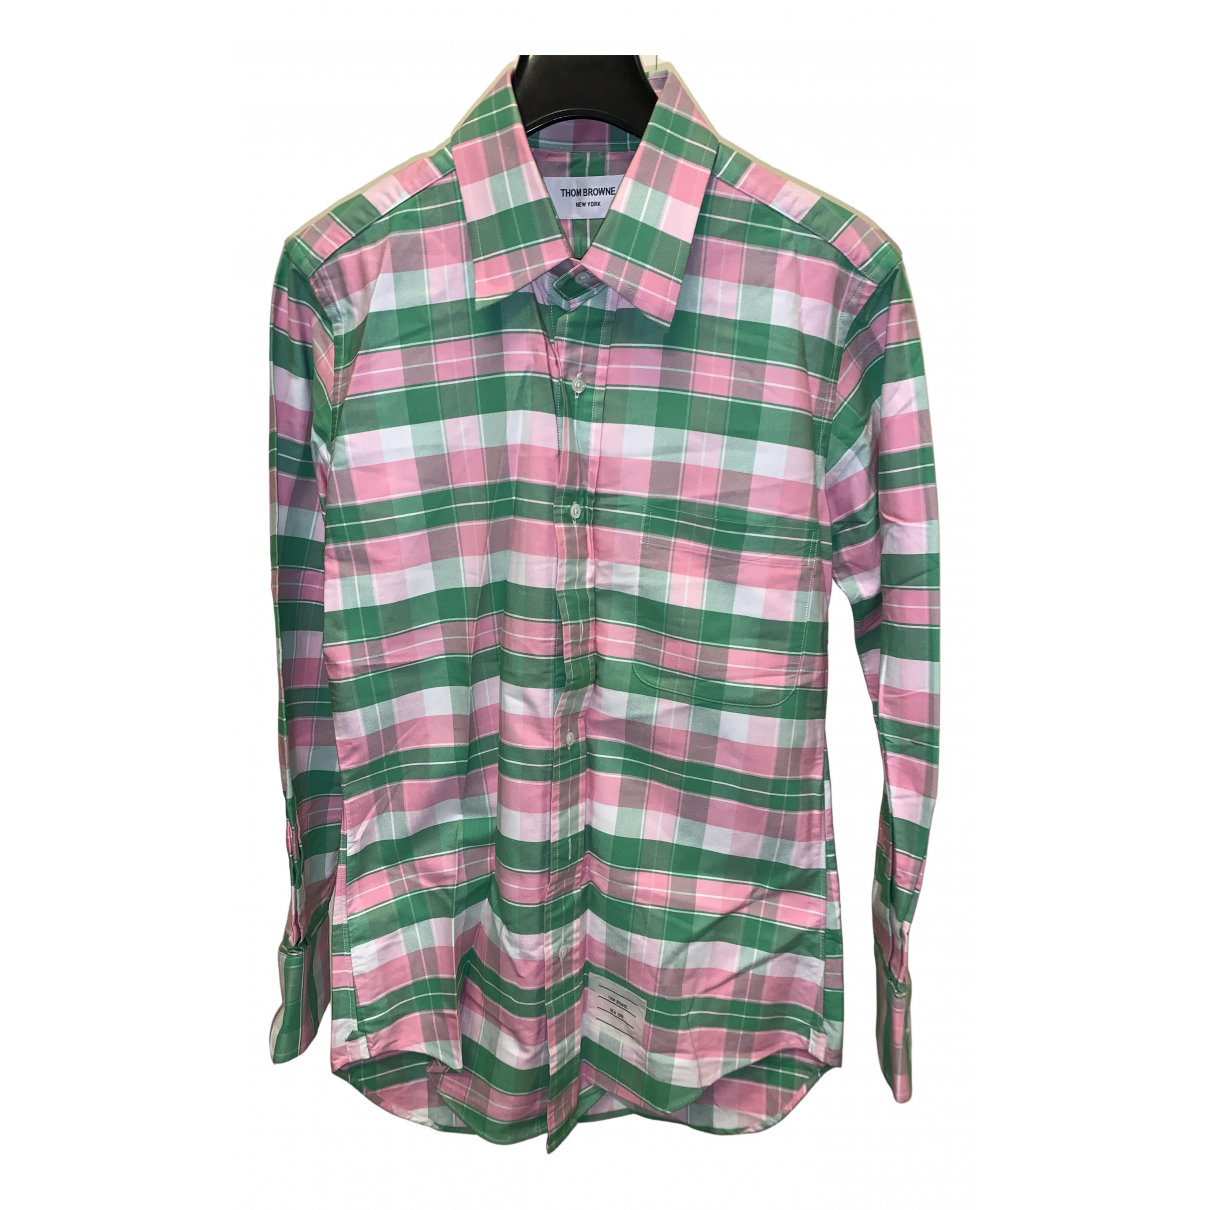 Thom Browne N Multicolour Cotton Shirts for Men M International